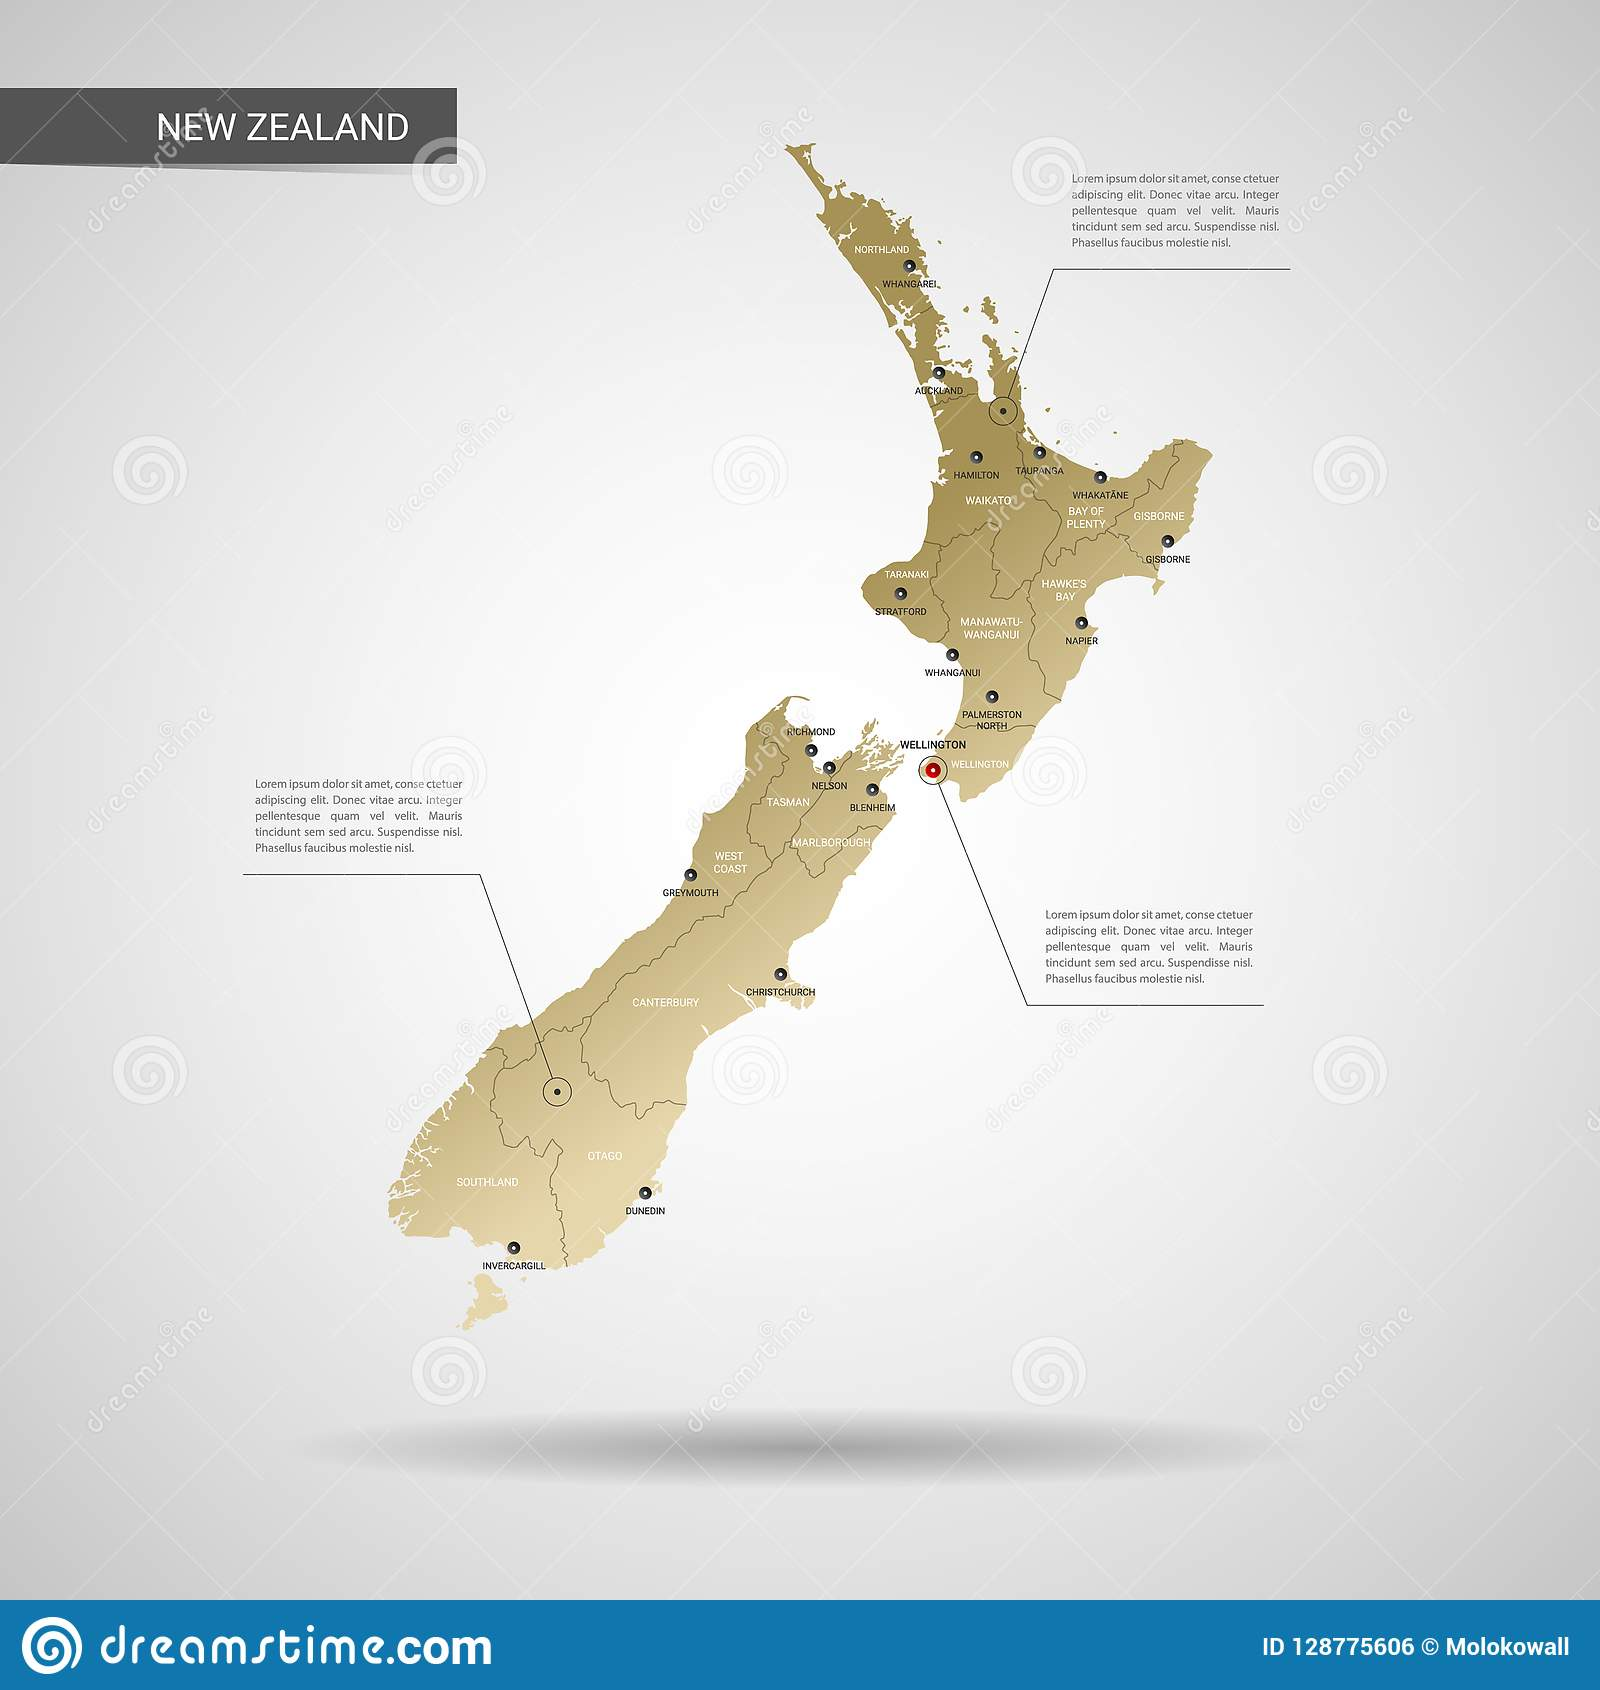 City Map Of New Zealand.Stylized New Zealand Map Vector Illustration Stock Vector